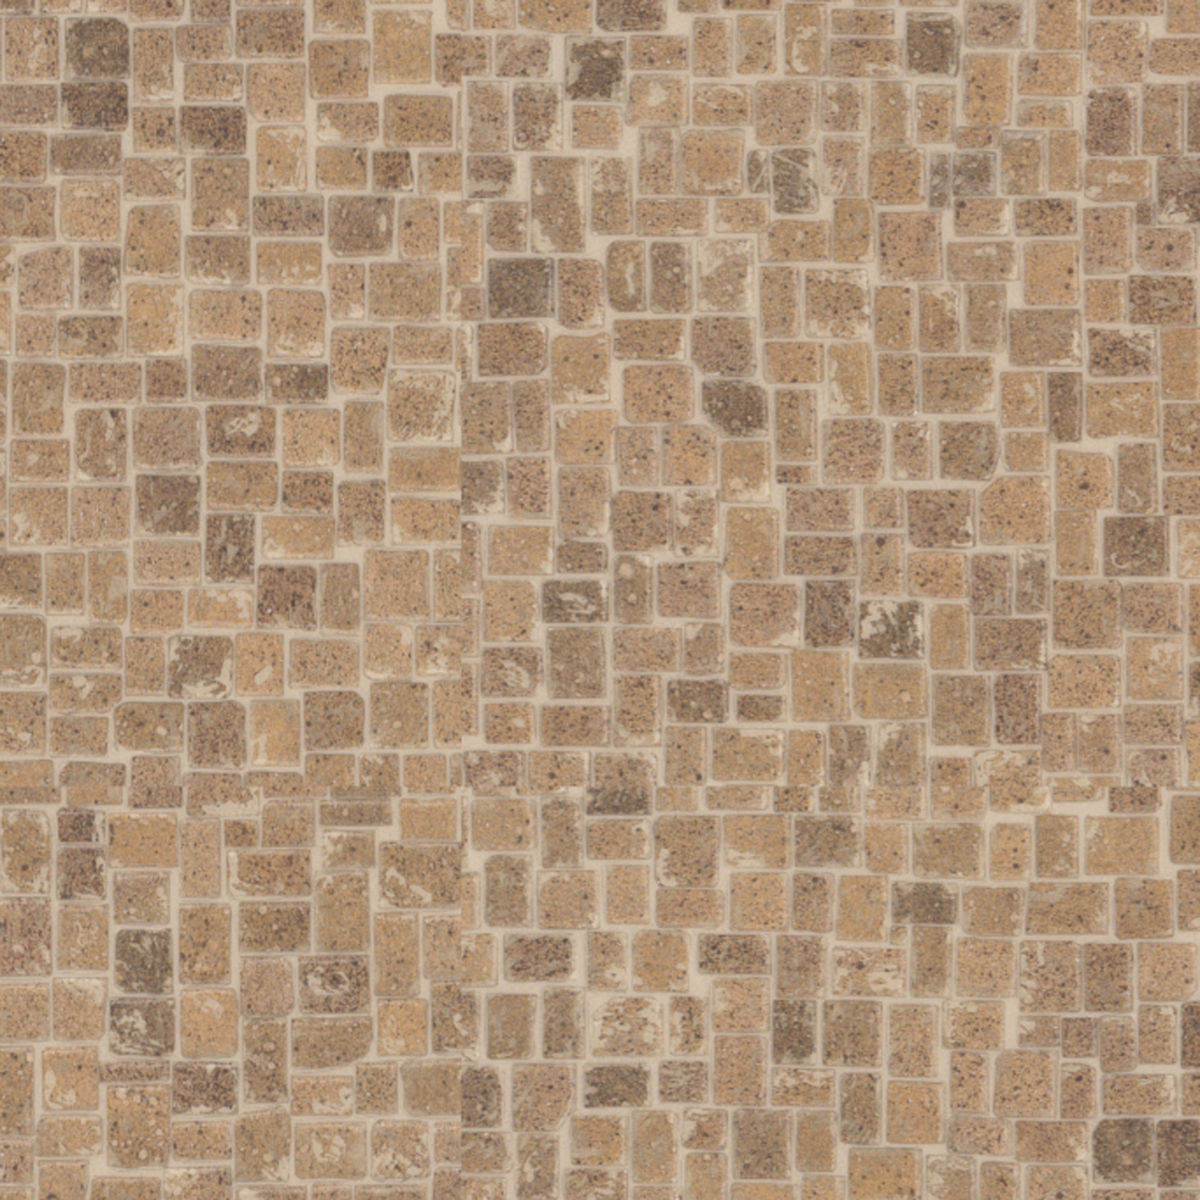 Karndean michelangelo neopolitan brick mx93 vinyl flooring for Brick flooring prices